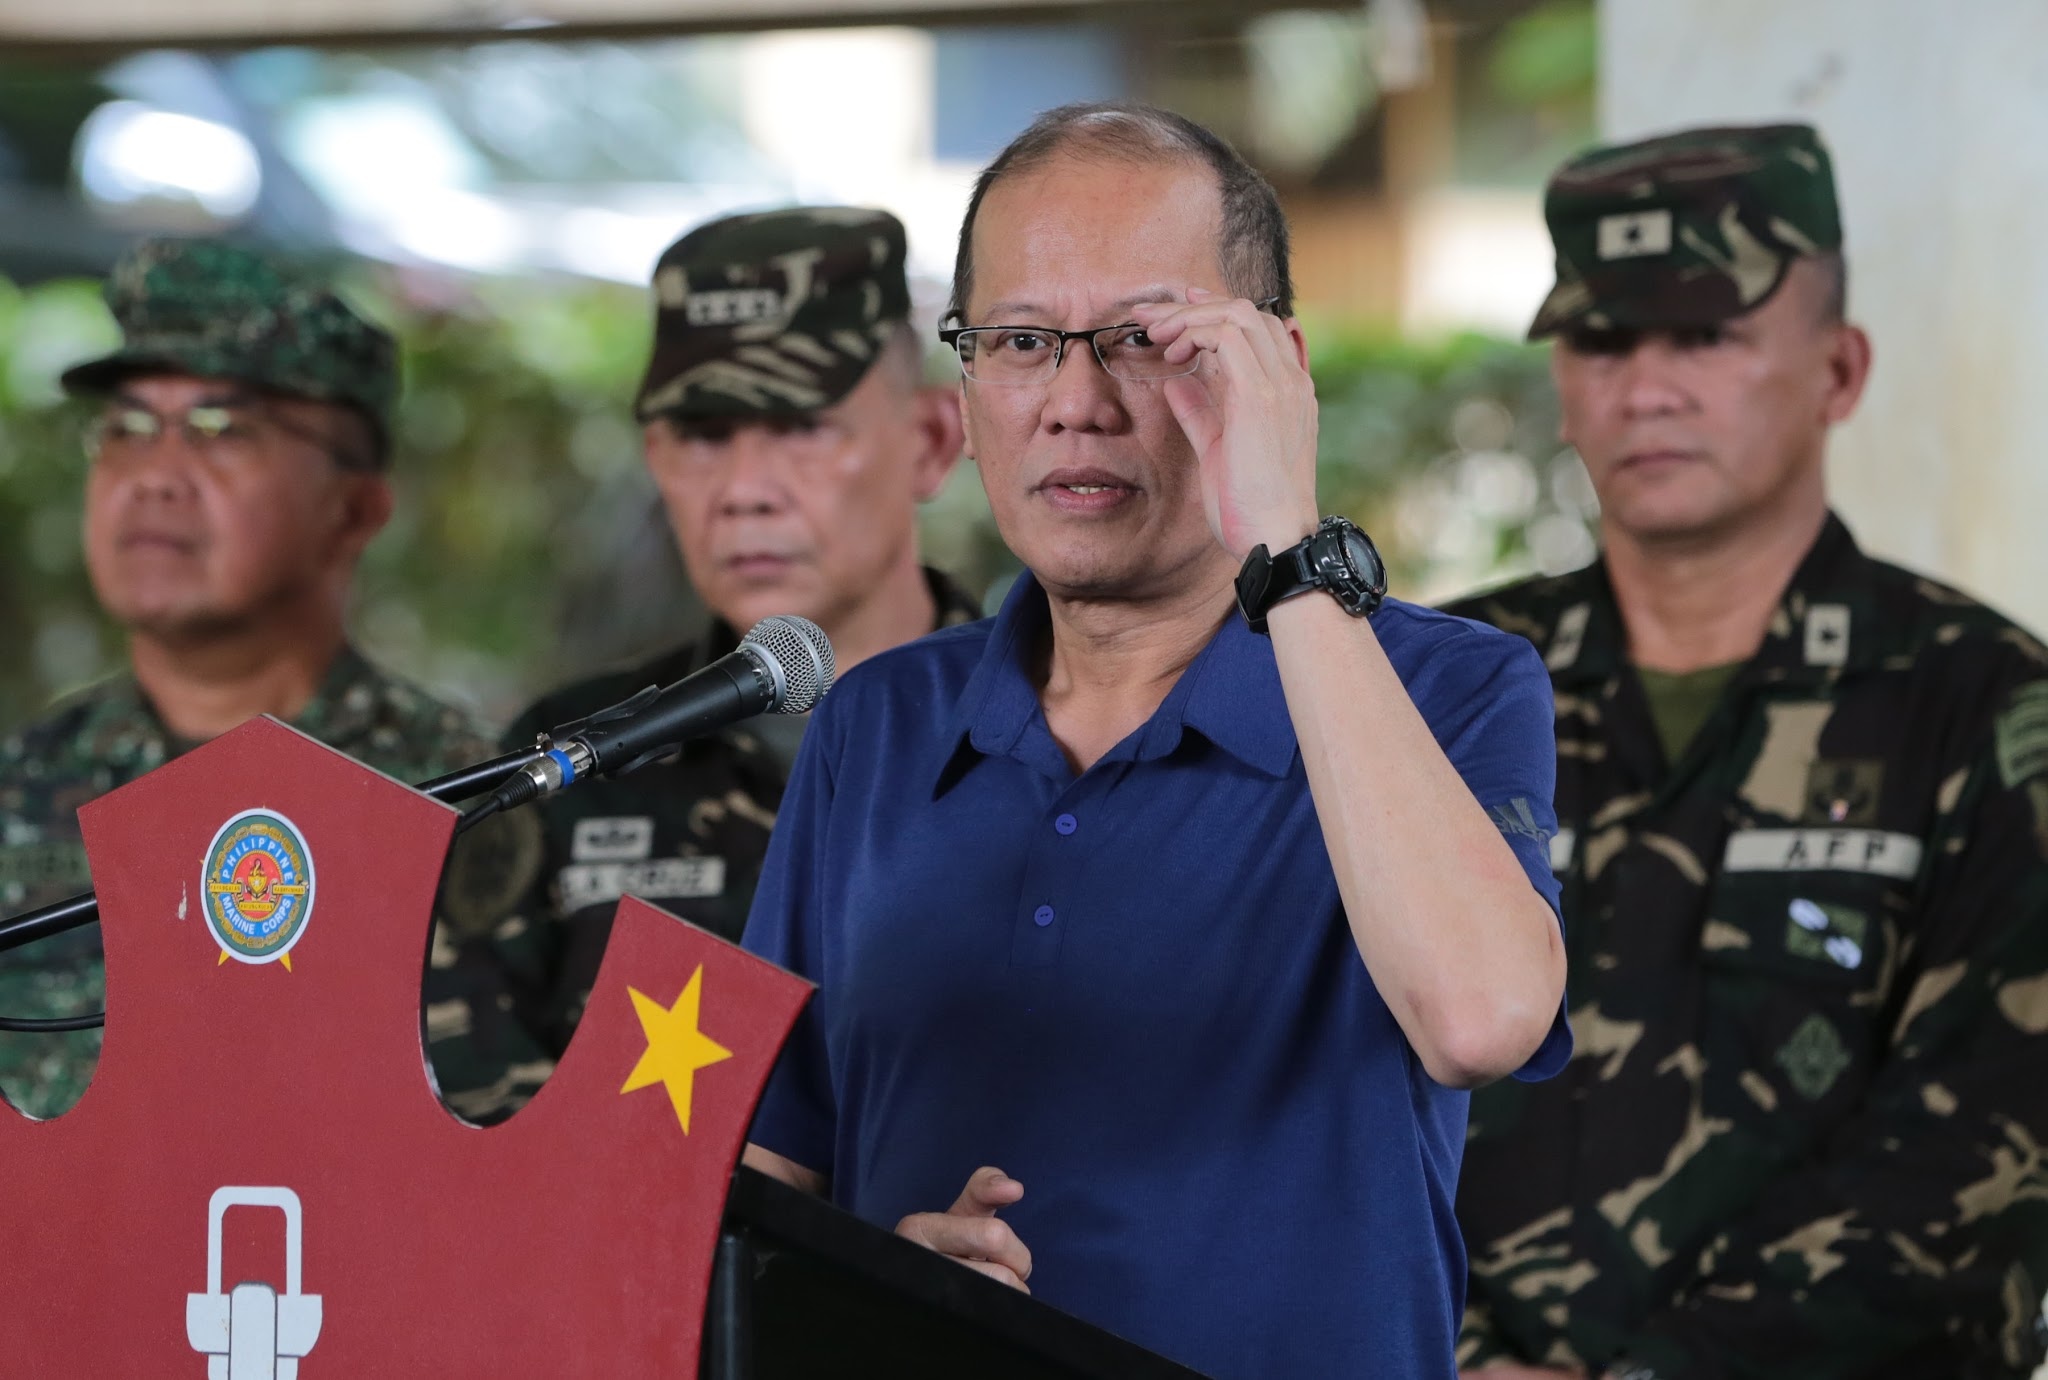 President Benigno S. Aquino lll answers questions from the media after the situational briefing by the Joint Task Force of the Armed Forces of the Philippines at Camp Teodulfo S. Bautista in Bgy. Bus-Bus, Jolo Sulu, Wednesday (June 15). (Photo by Benhur Arcayan / Malacanang Photo Bureau)